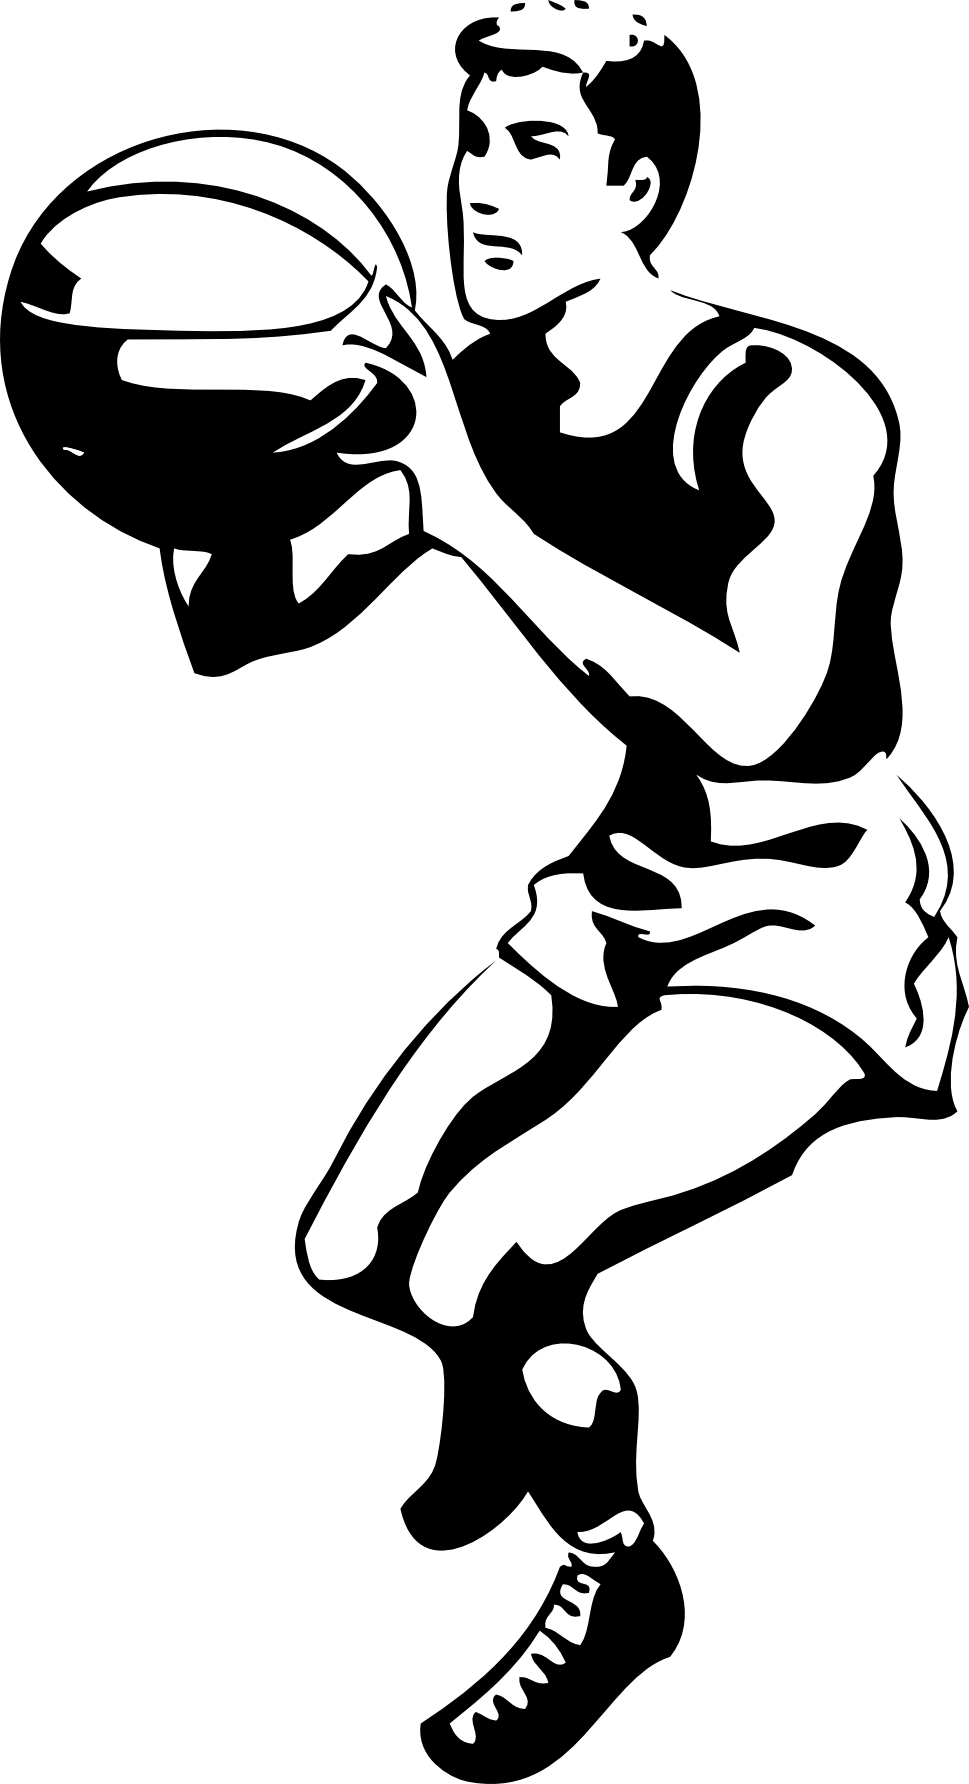 Retro basketball players shooting clipart jpg library library 19 Crowd clipart HUGE FREEBIE! Download for PowerPoint presentations ... jpg library library